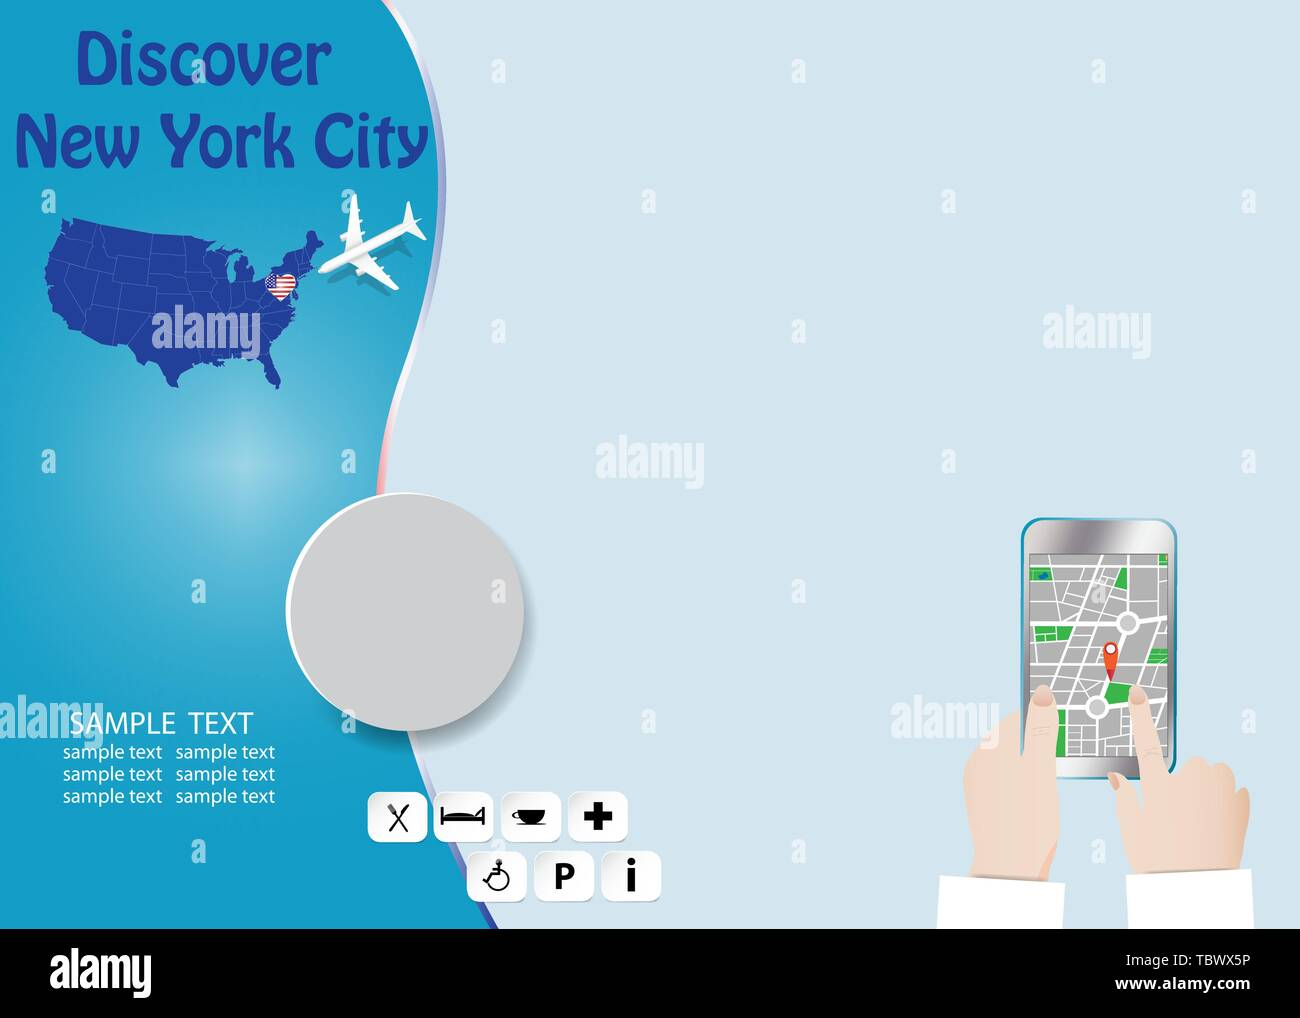 Discover New York City concept with plane flying over map of ...